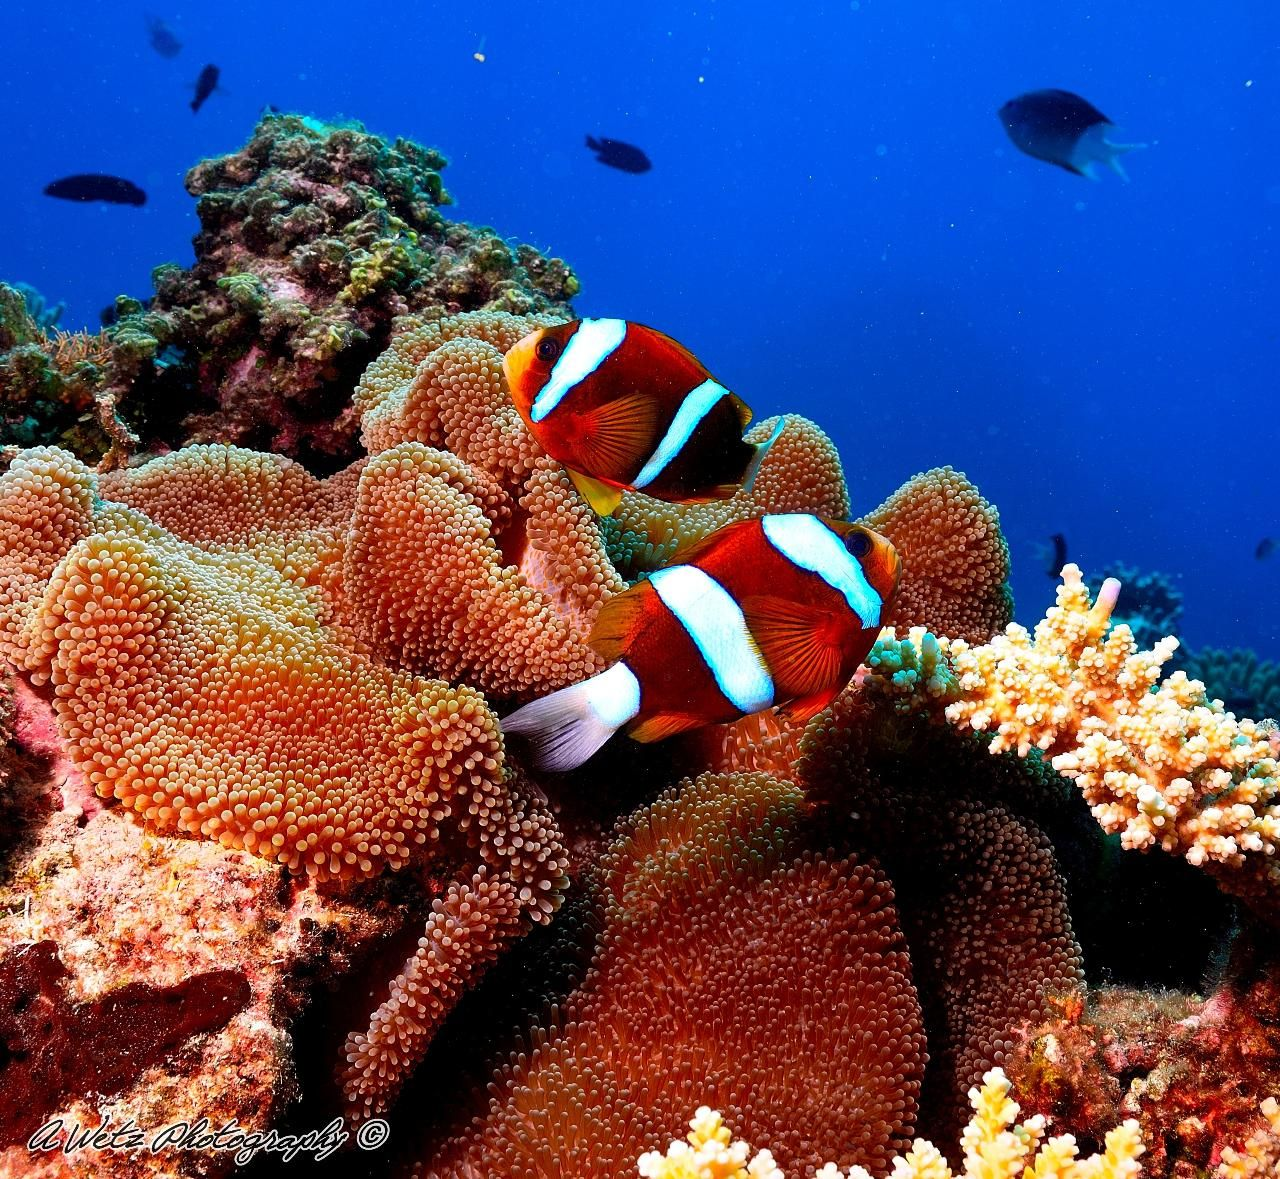 Great Barrier Reef Day Trip - Snorkeling or Discover Scuba Great Barrier Reef, Australia